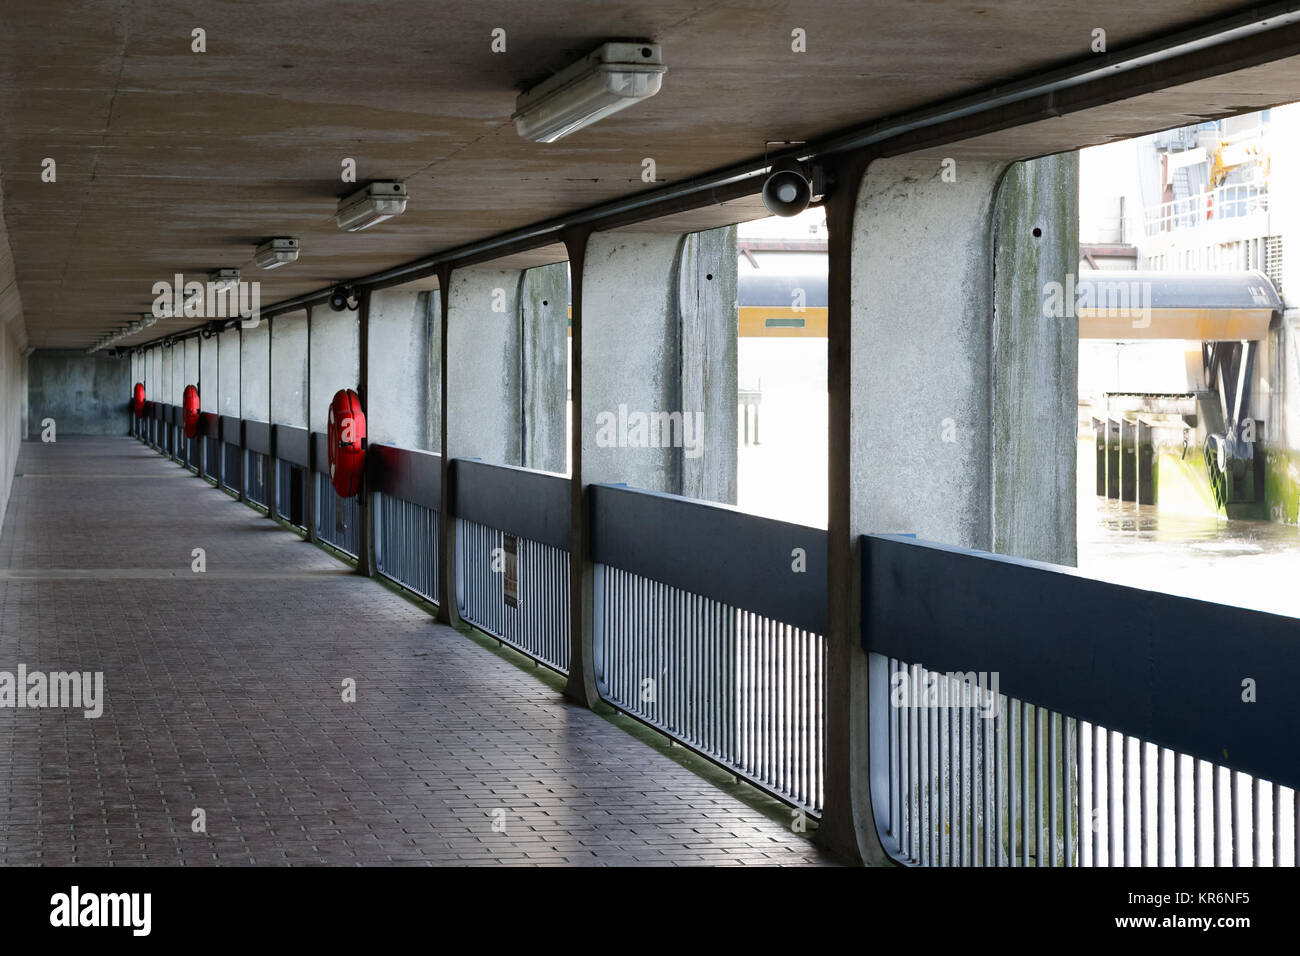 Thames Barrier passageway in London, part of the Thames Path national trail - Stock Image